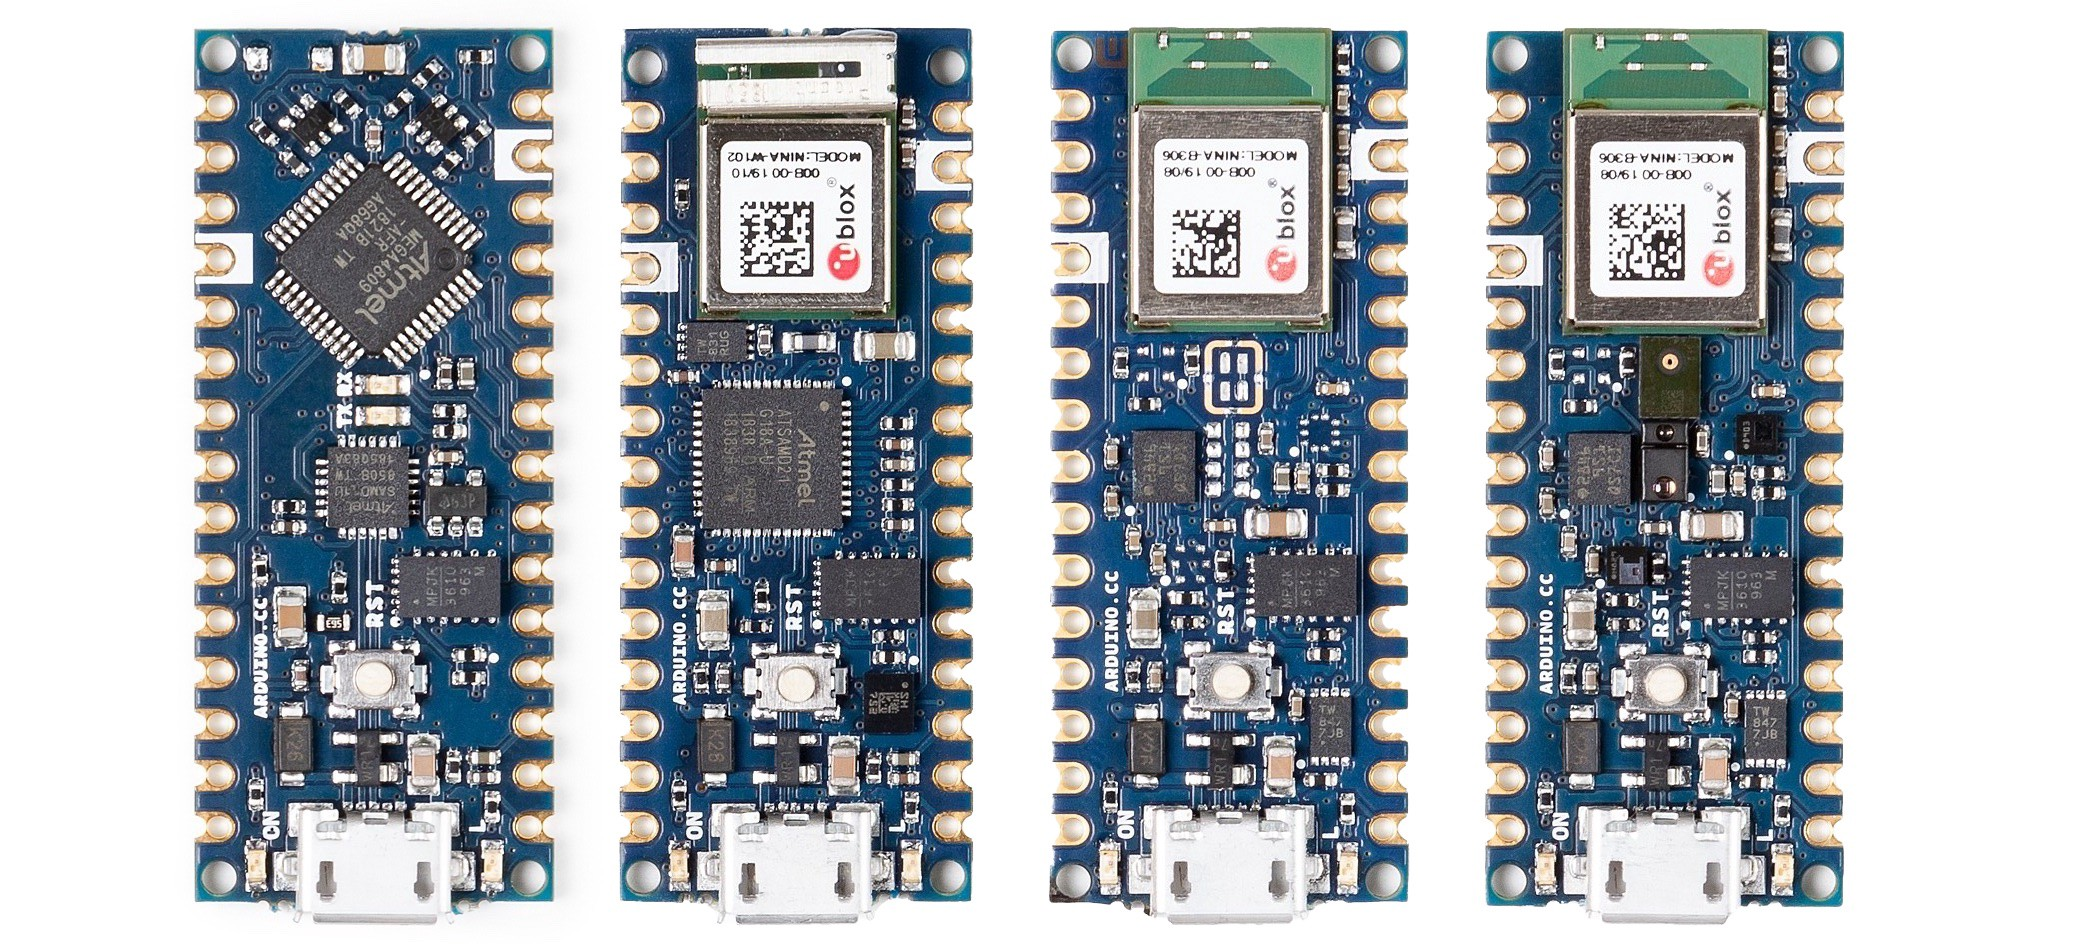 Introducing Four New Arduino Nanos - Hackster Blog